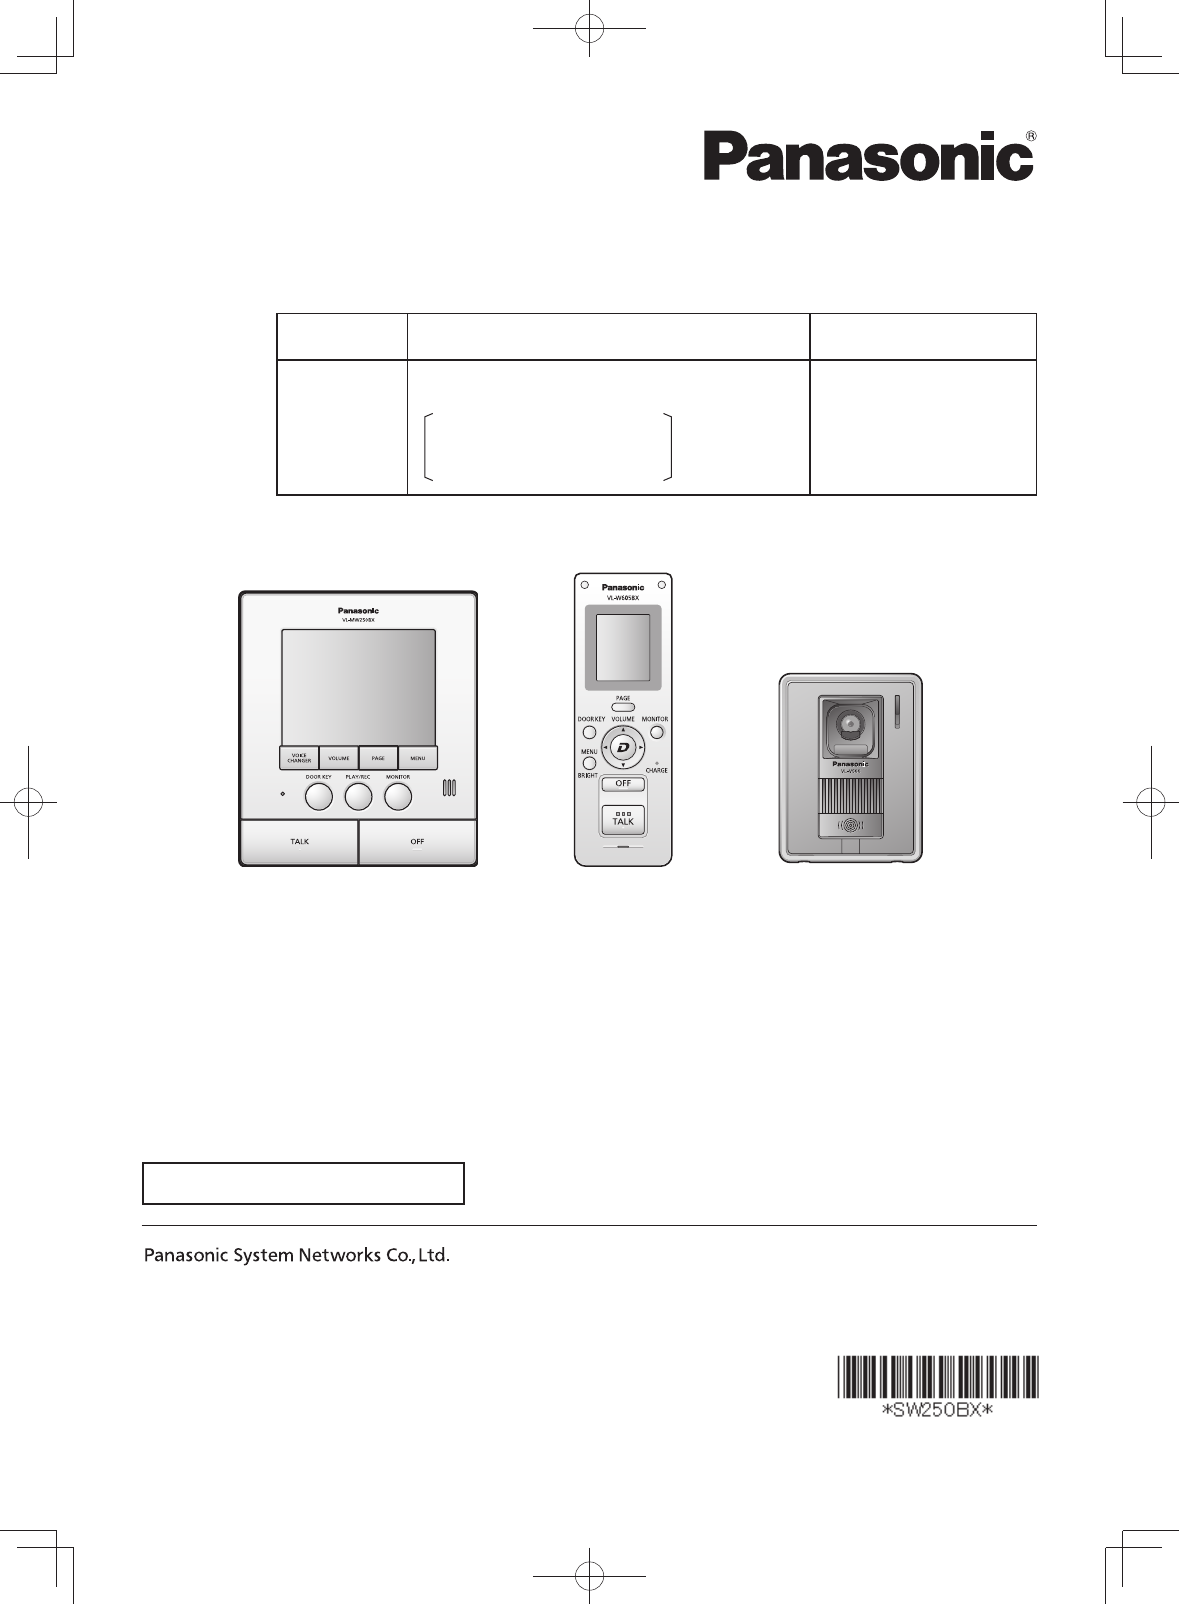 18ff134c 352f 44ab ac58 503e783f04e1 bg1 panasonic intercom system vl sw250bx user guide manualsonline com panasonic intercom wiring diagram at honlapkeszites.co